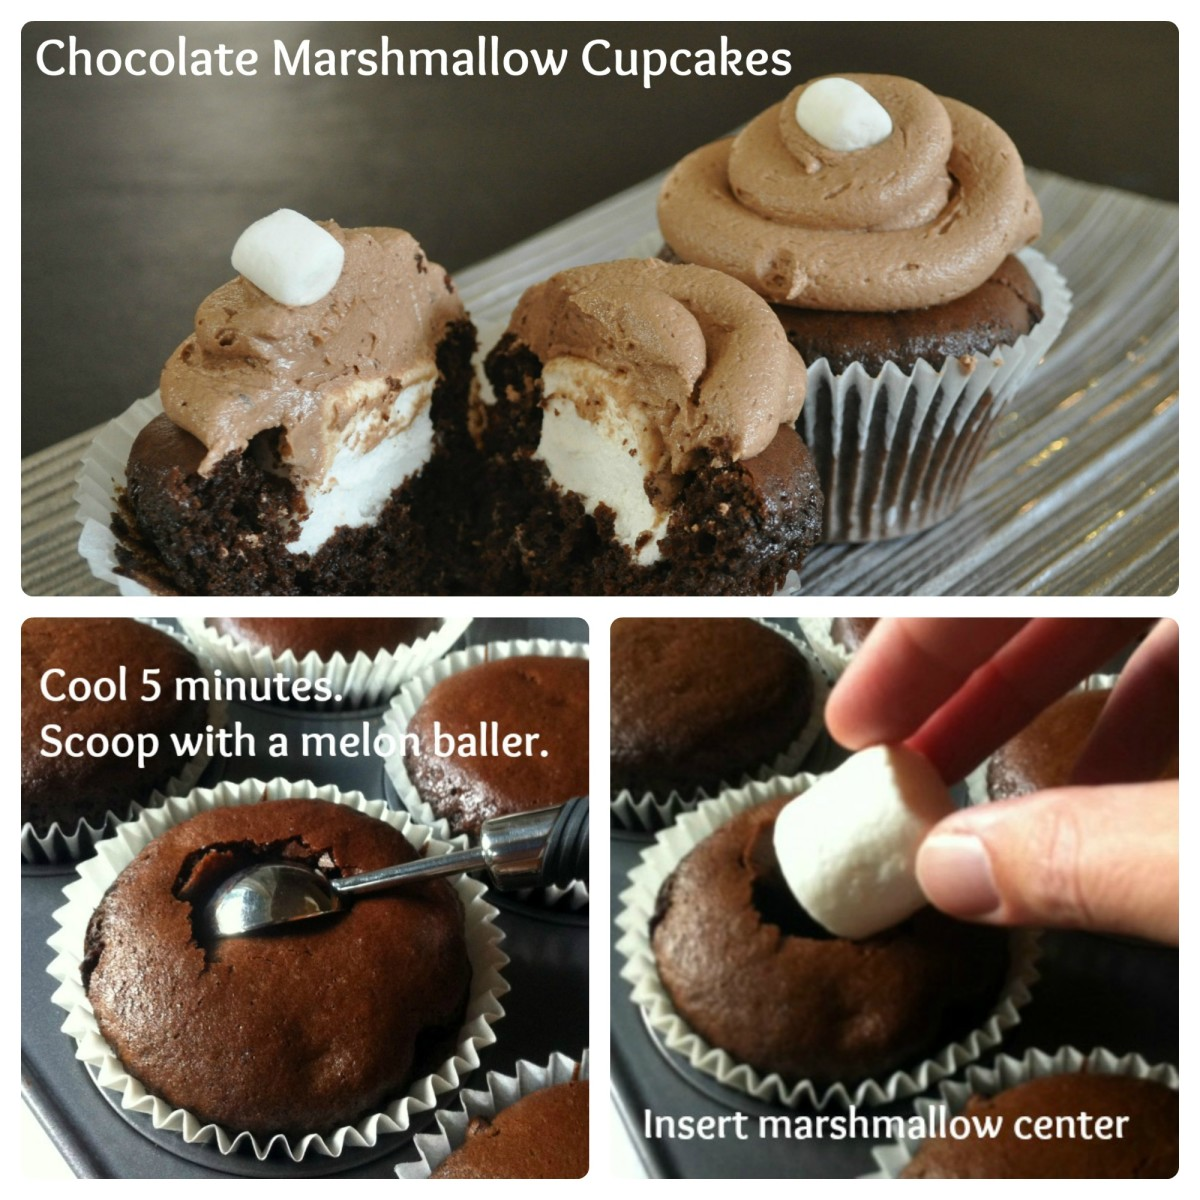 Chocolate Marshmallow Cupcakes Step by Step